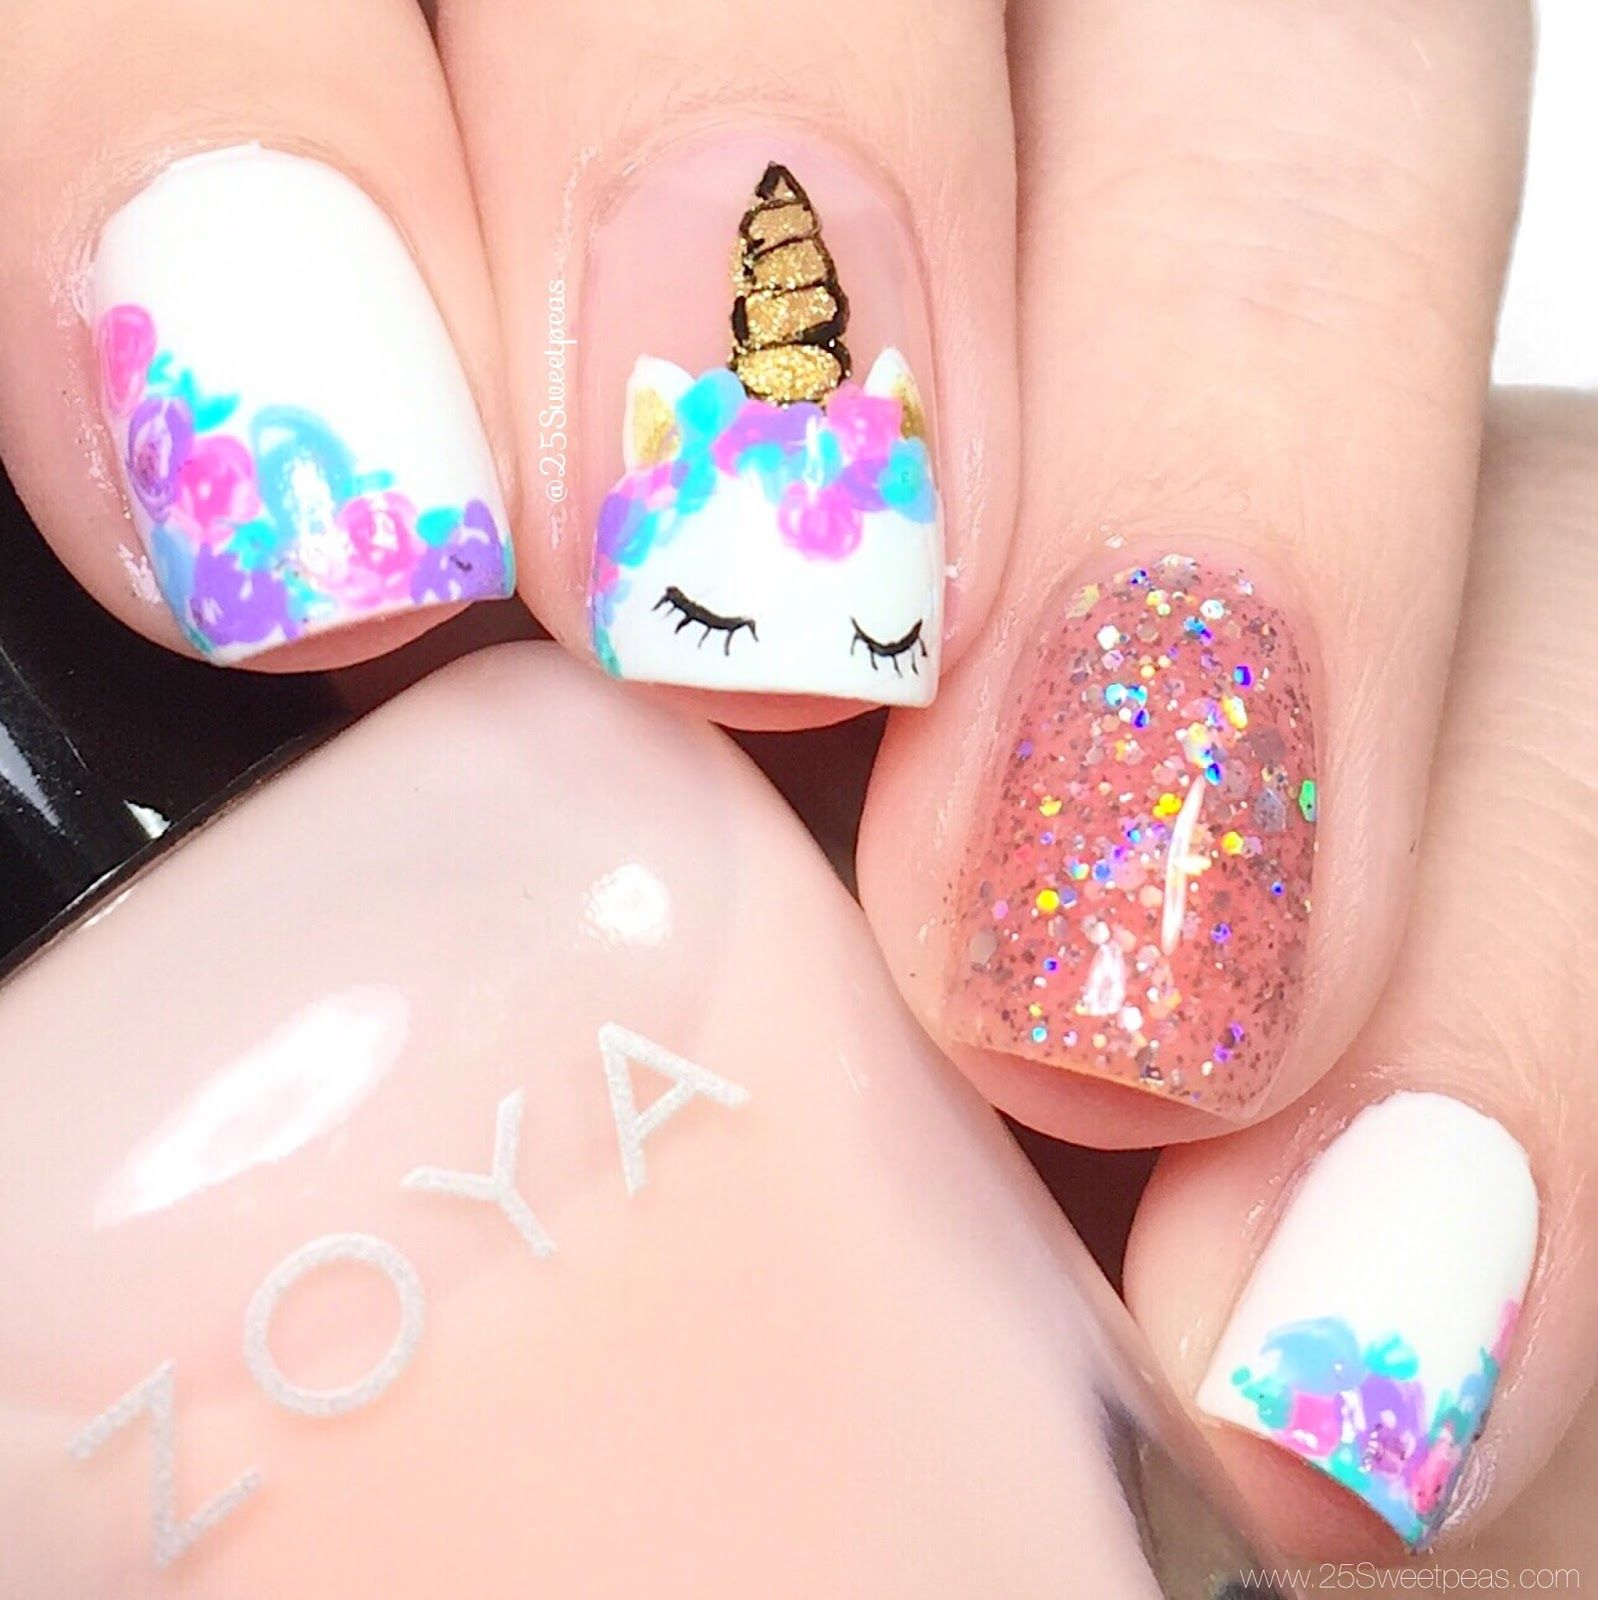 Unicorn Nail Art - Unicorn Nail Art + Tutorial In 2018 Nail Art Community Pins